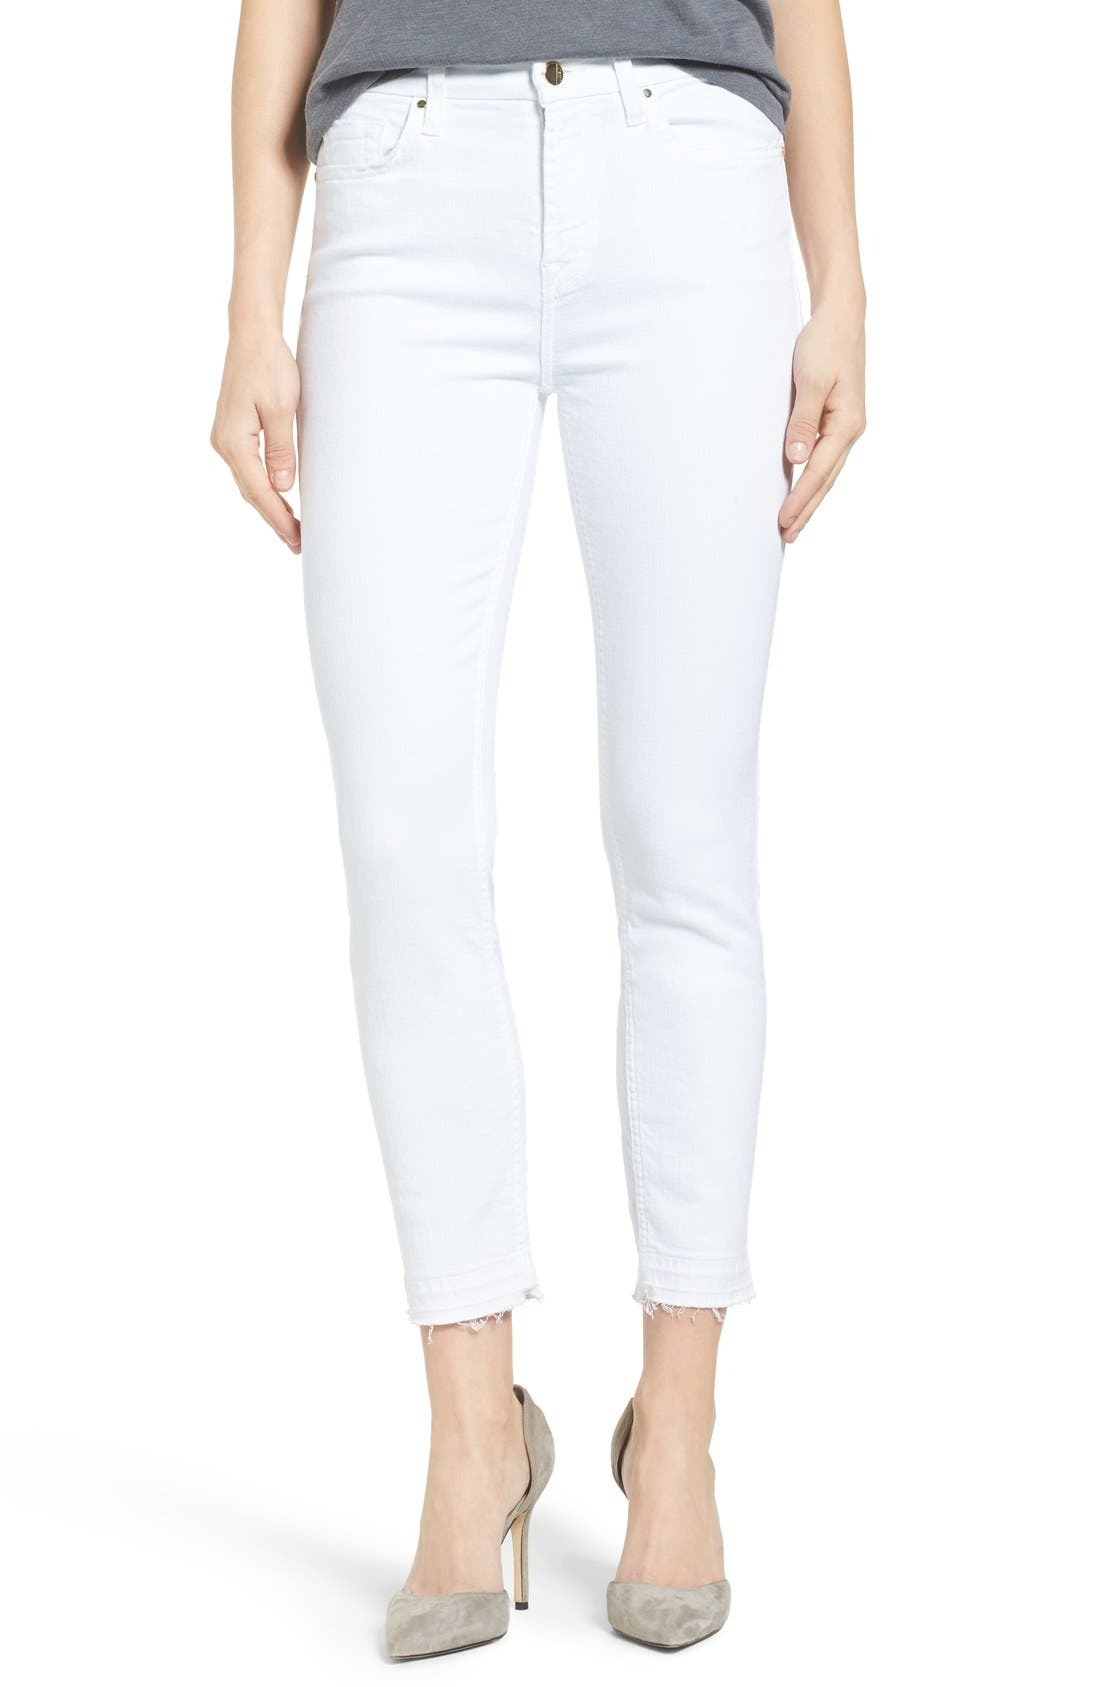 JEN7 Skinny Ankle Jeans W/ Released Hem, White in White Denim